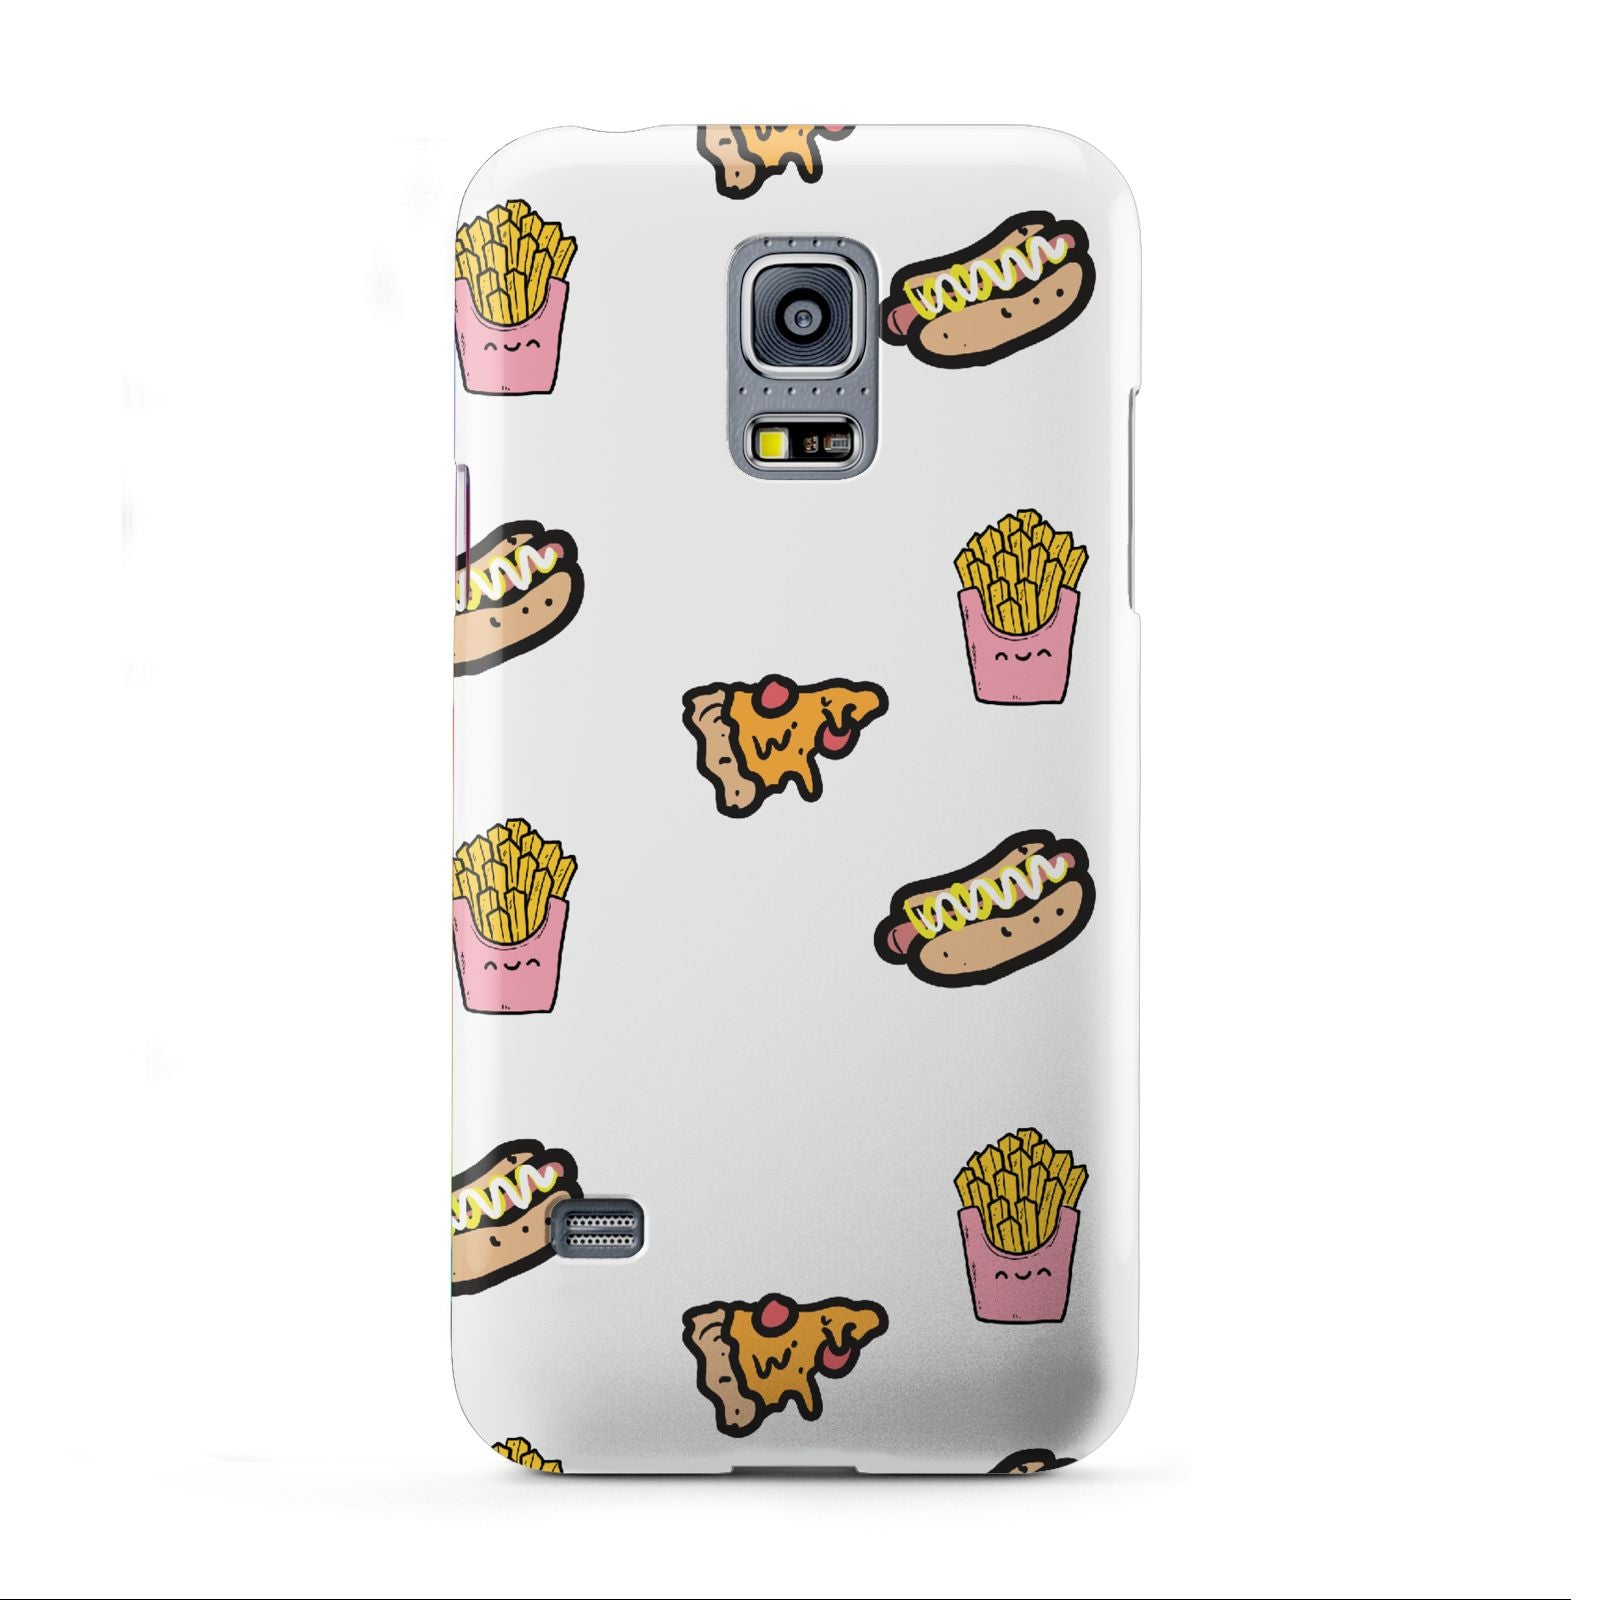 Fries Pizza Hot Dog Samsung Galaxy S5 Mini Case